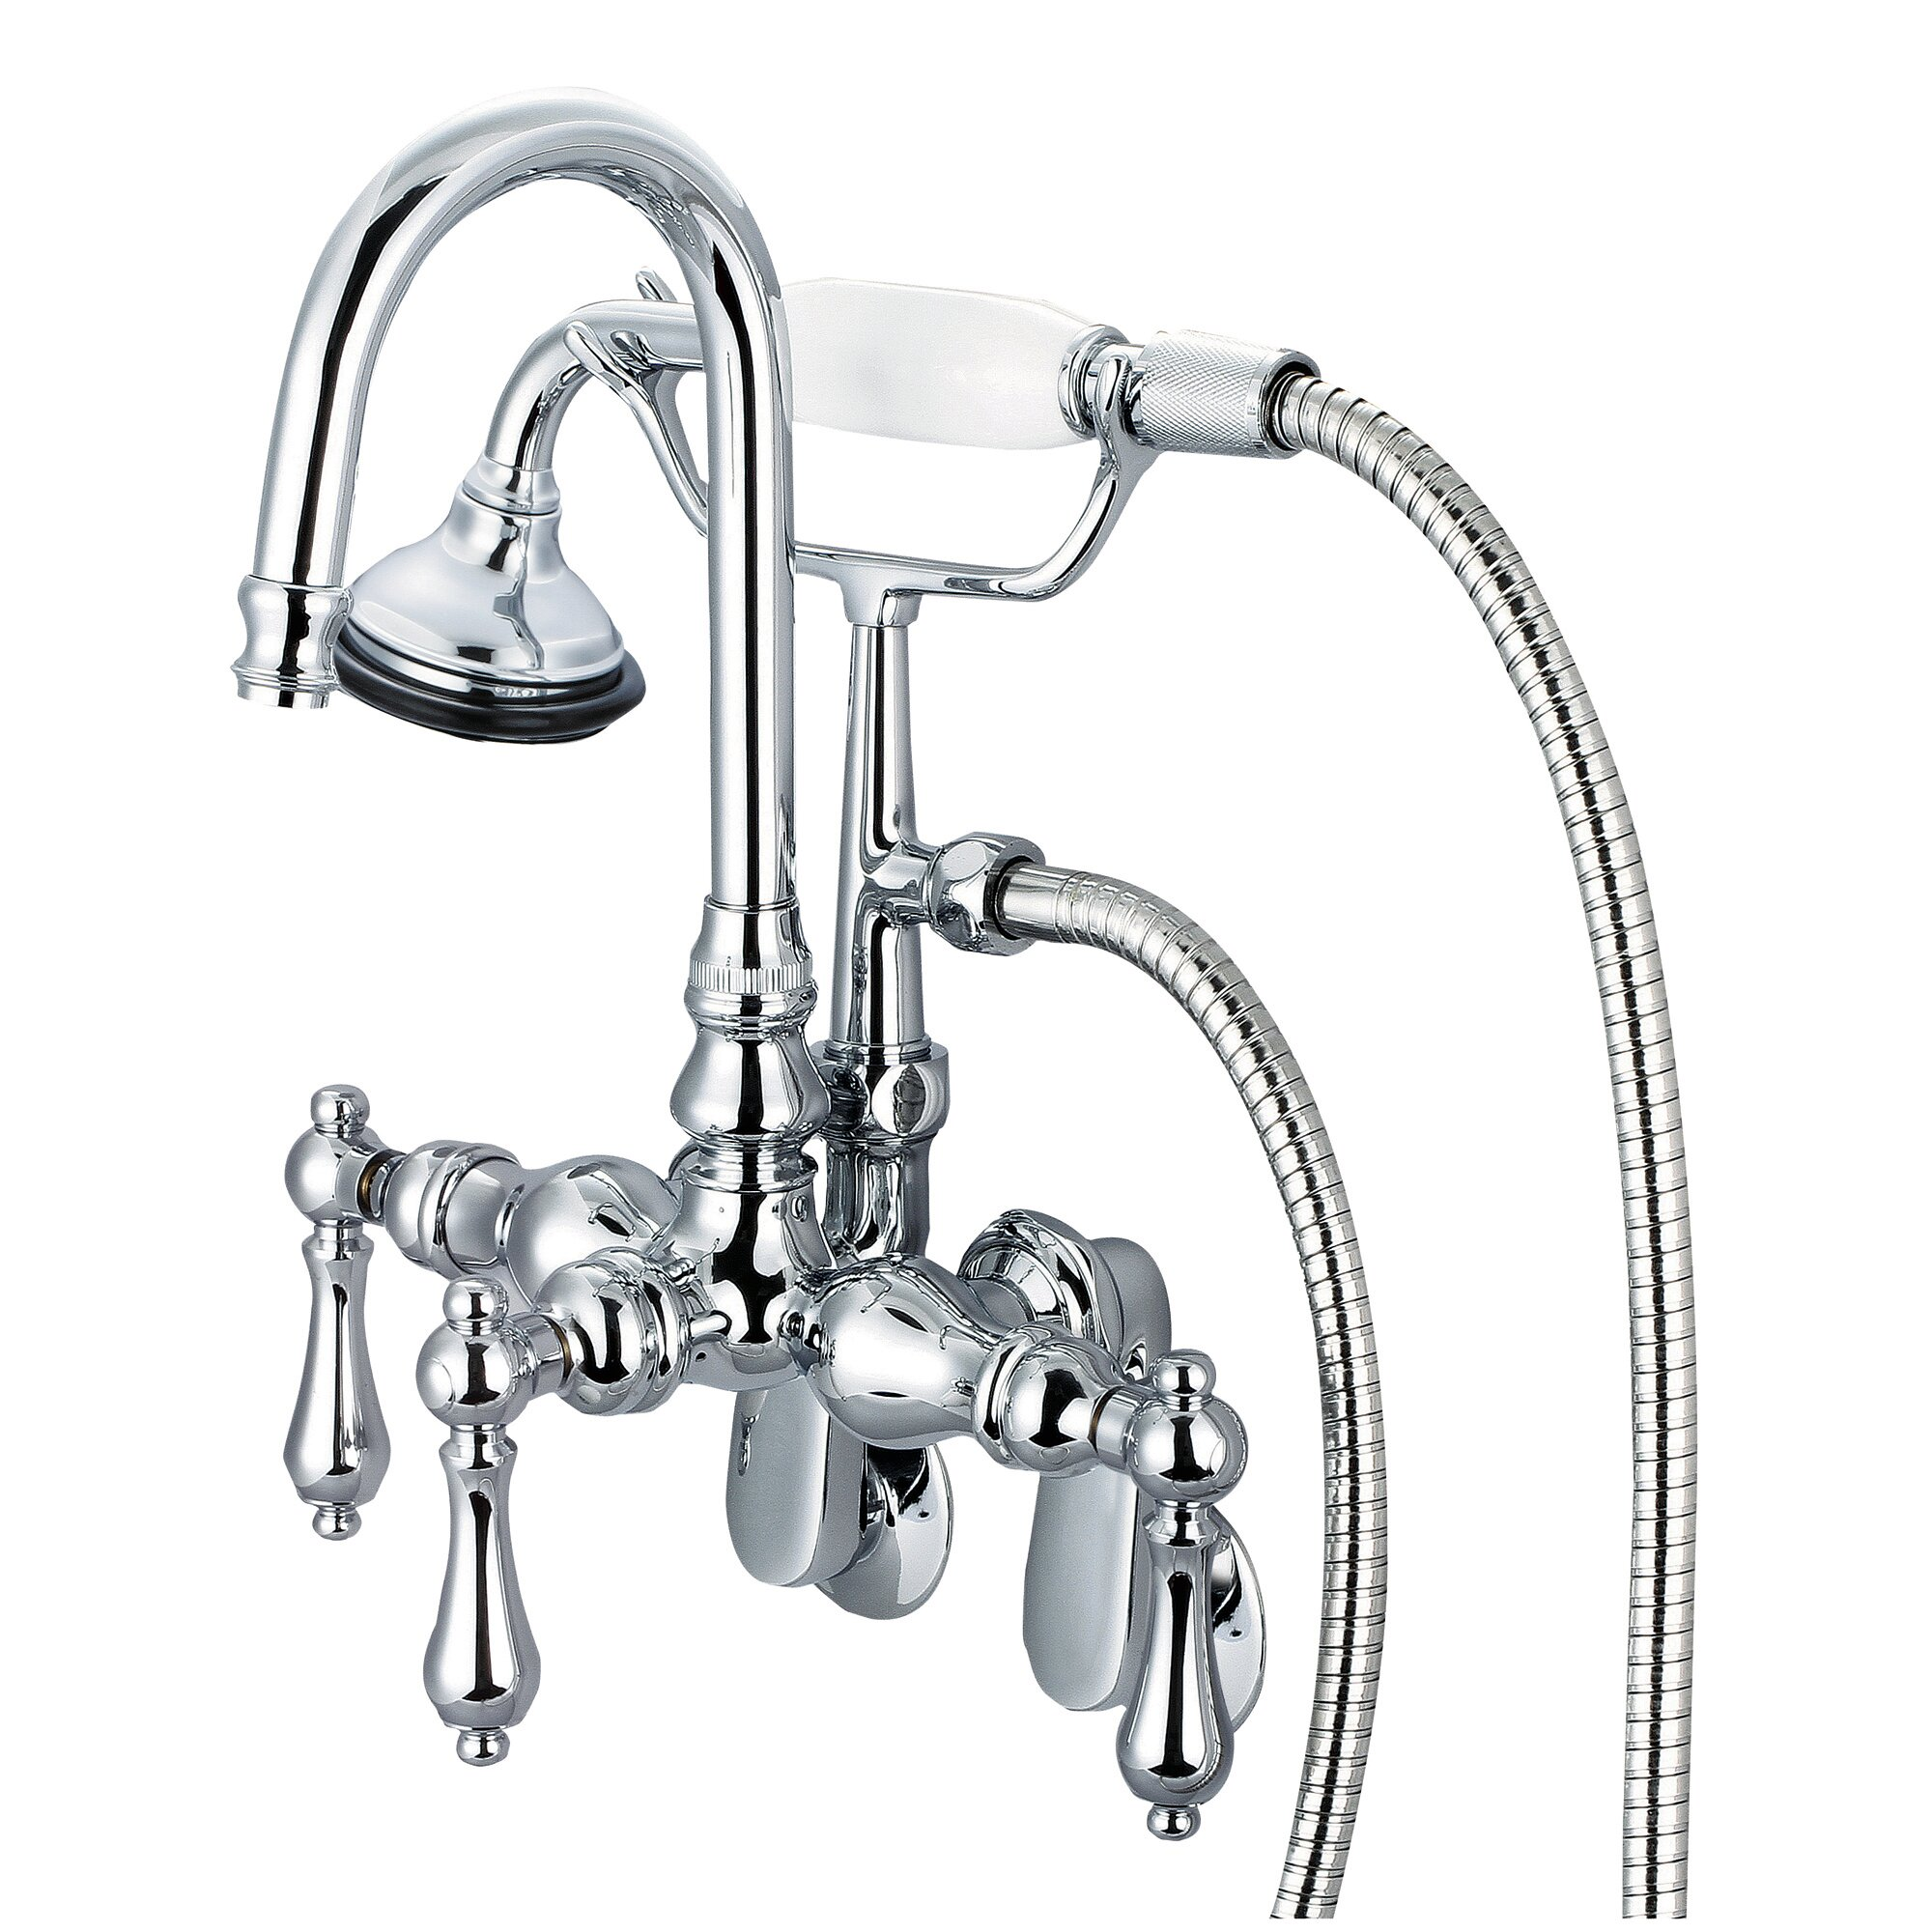 Stonington Adjustable Spread Wall Mount Tub Faucet With Gooseneck Spout Swivel Wall Connector Handheld Shower